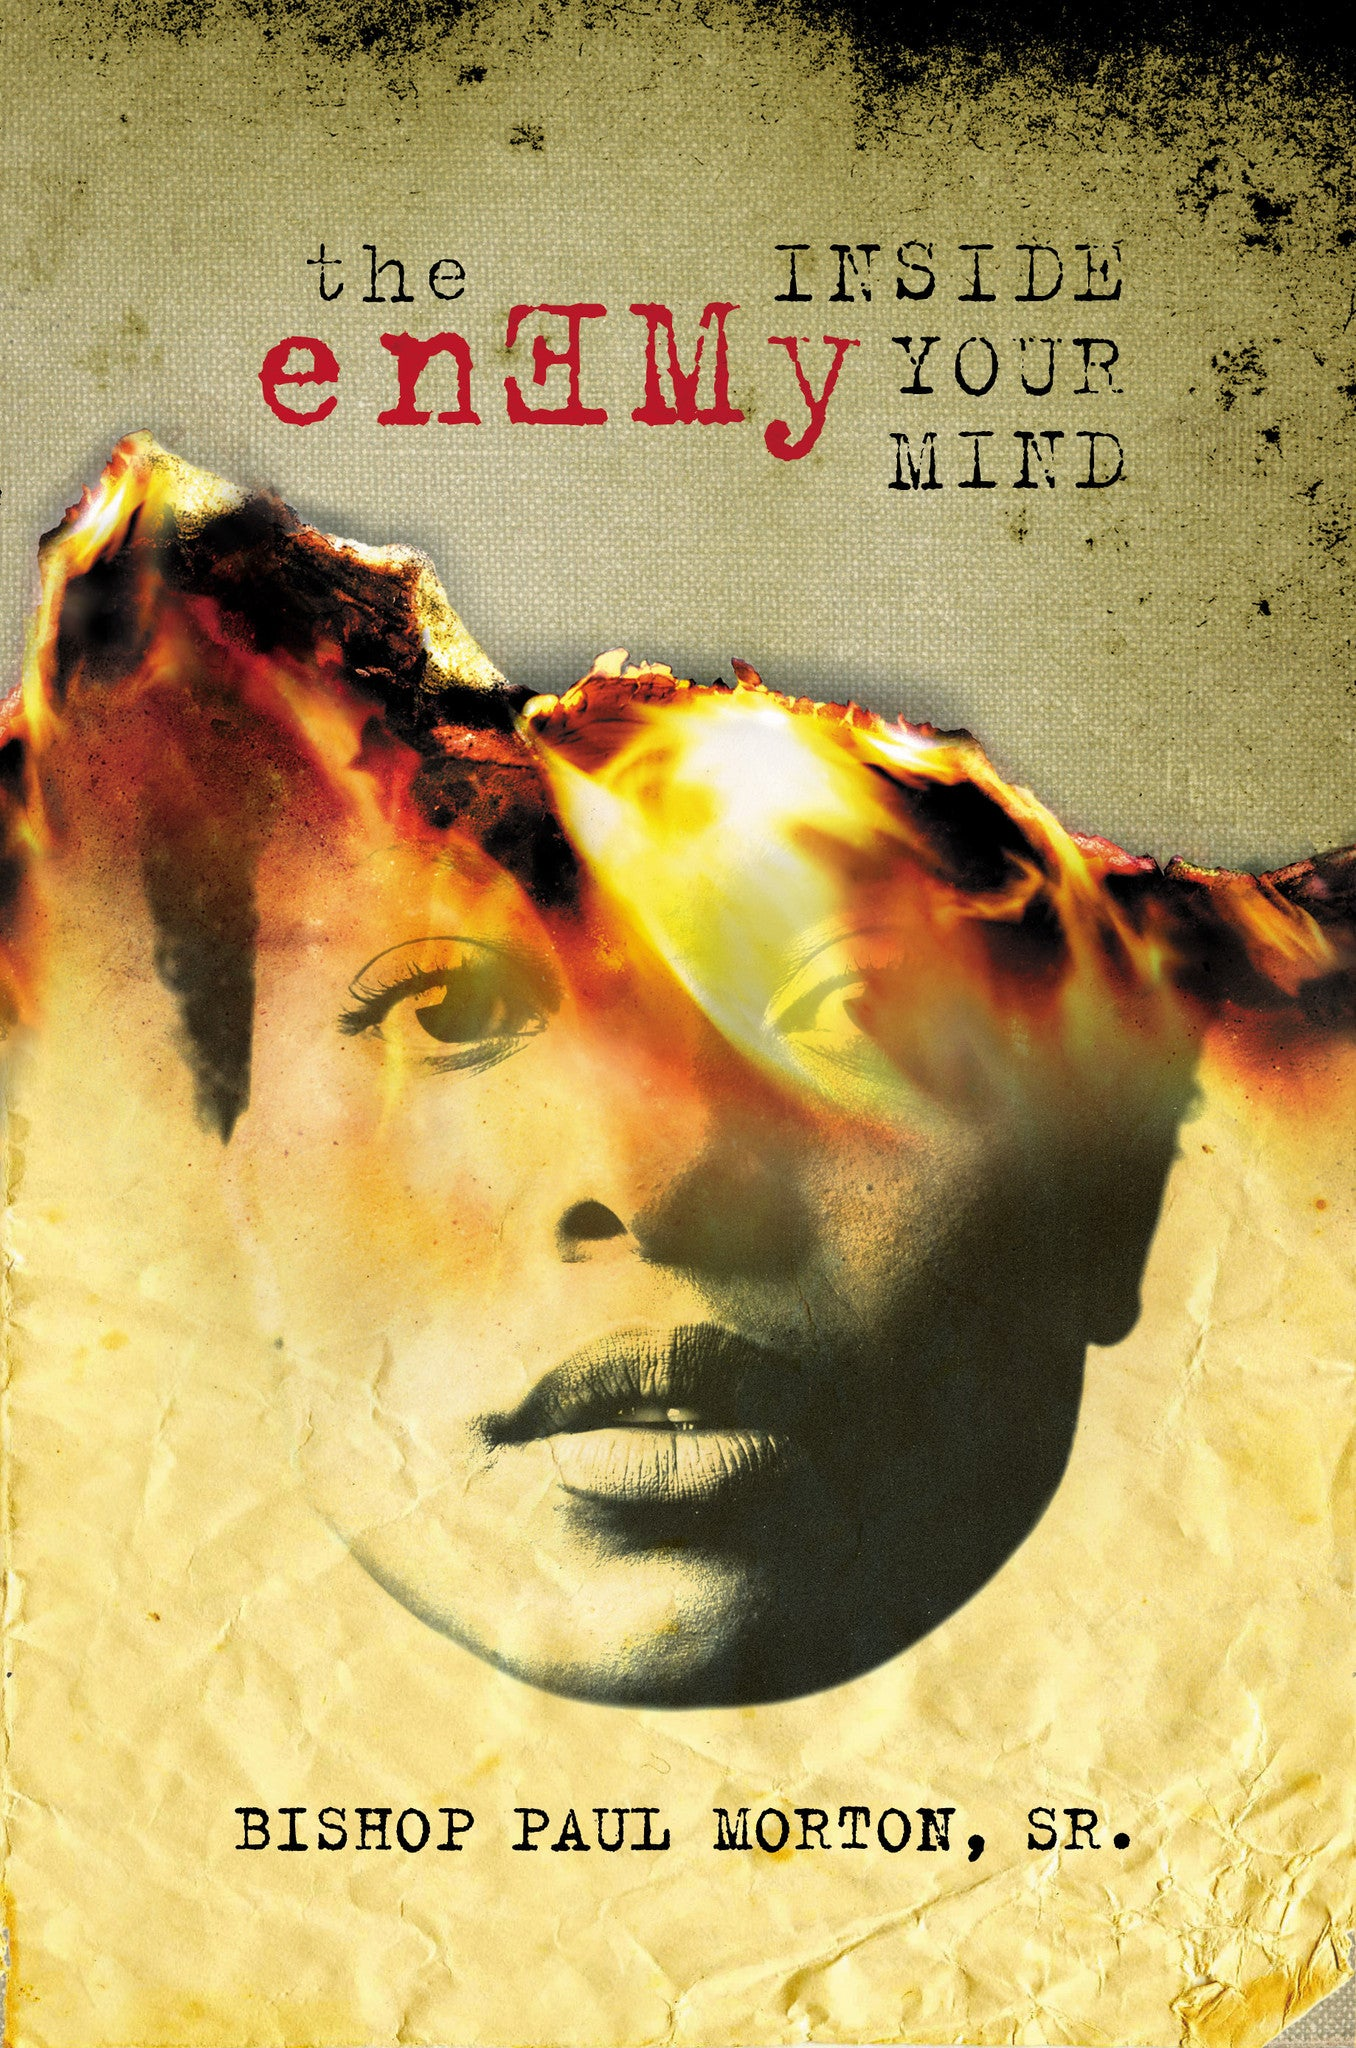 The Enemy Inside Your Mind by Bishop Paul Morton